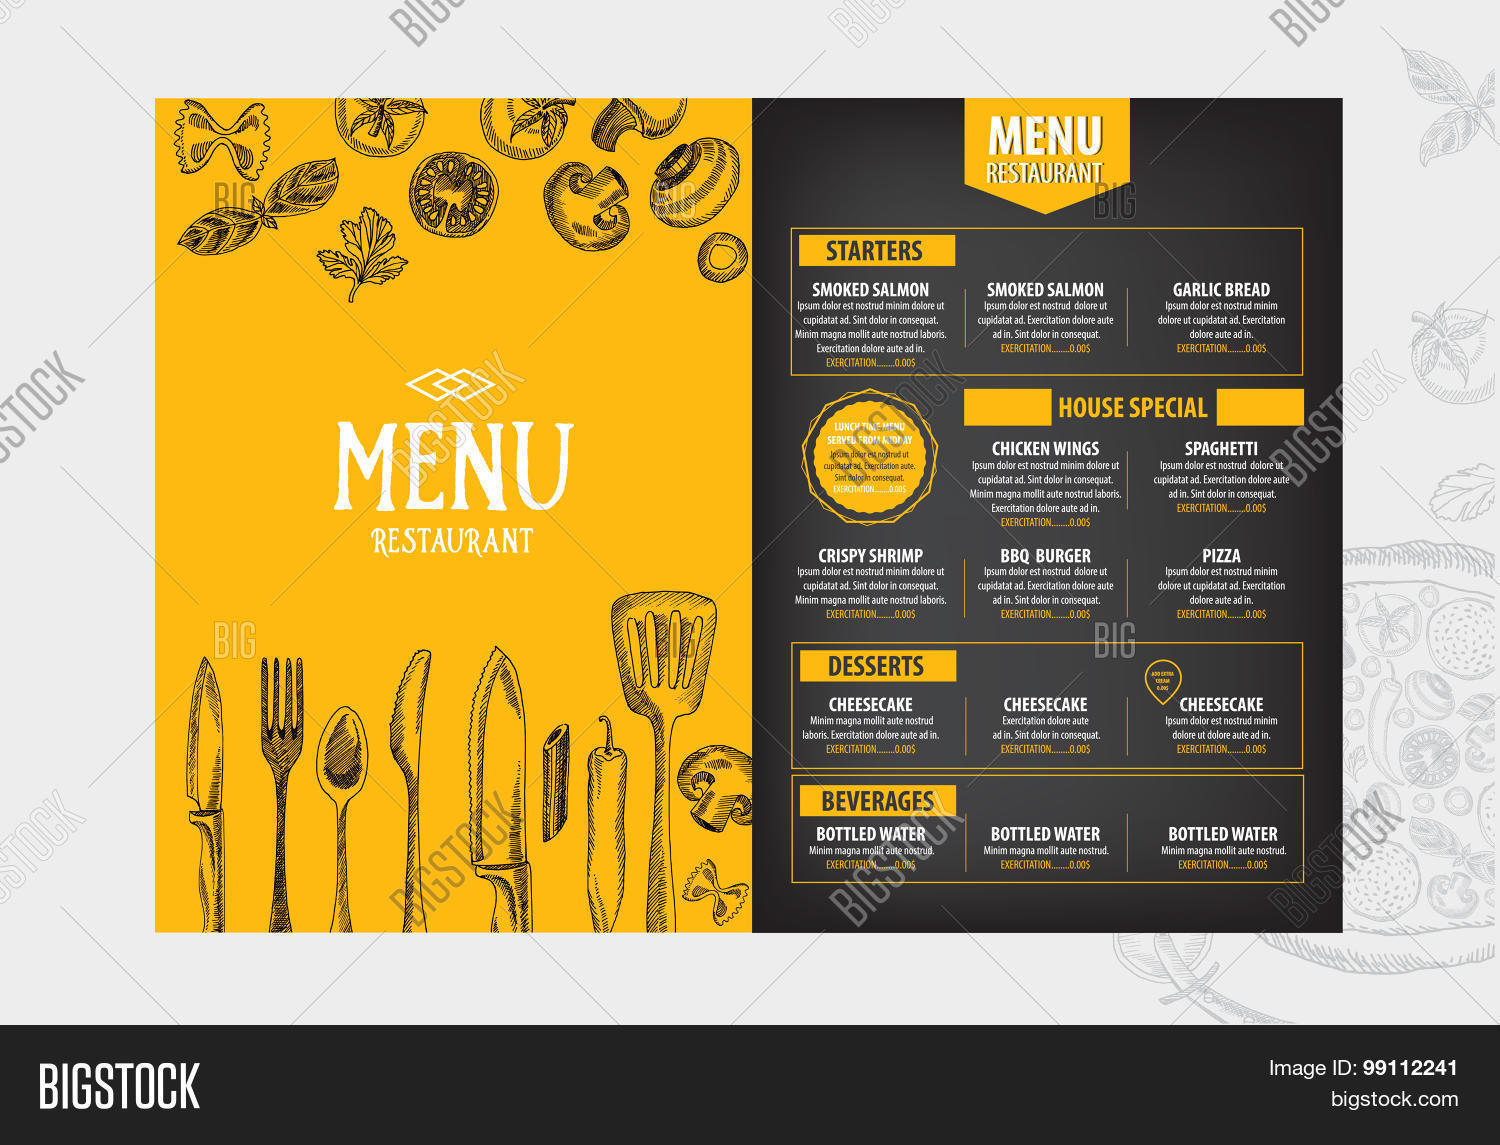 Cafe menu restaurant brochure Food design template Vector – Restarunt Brochure